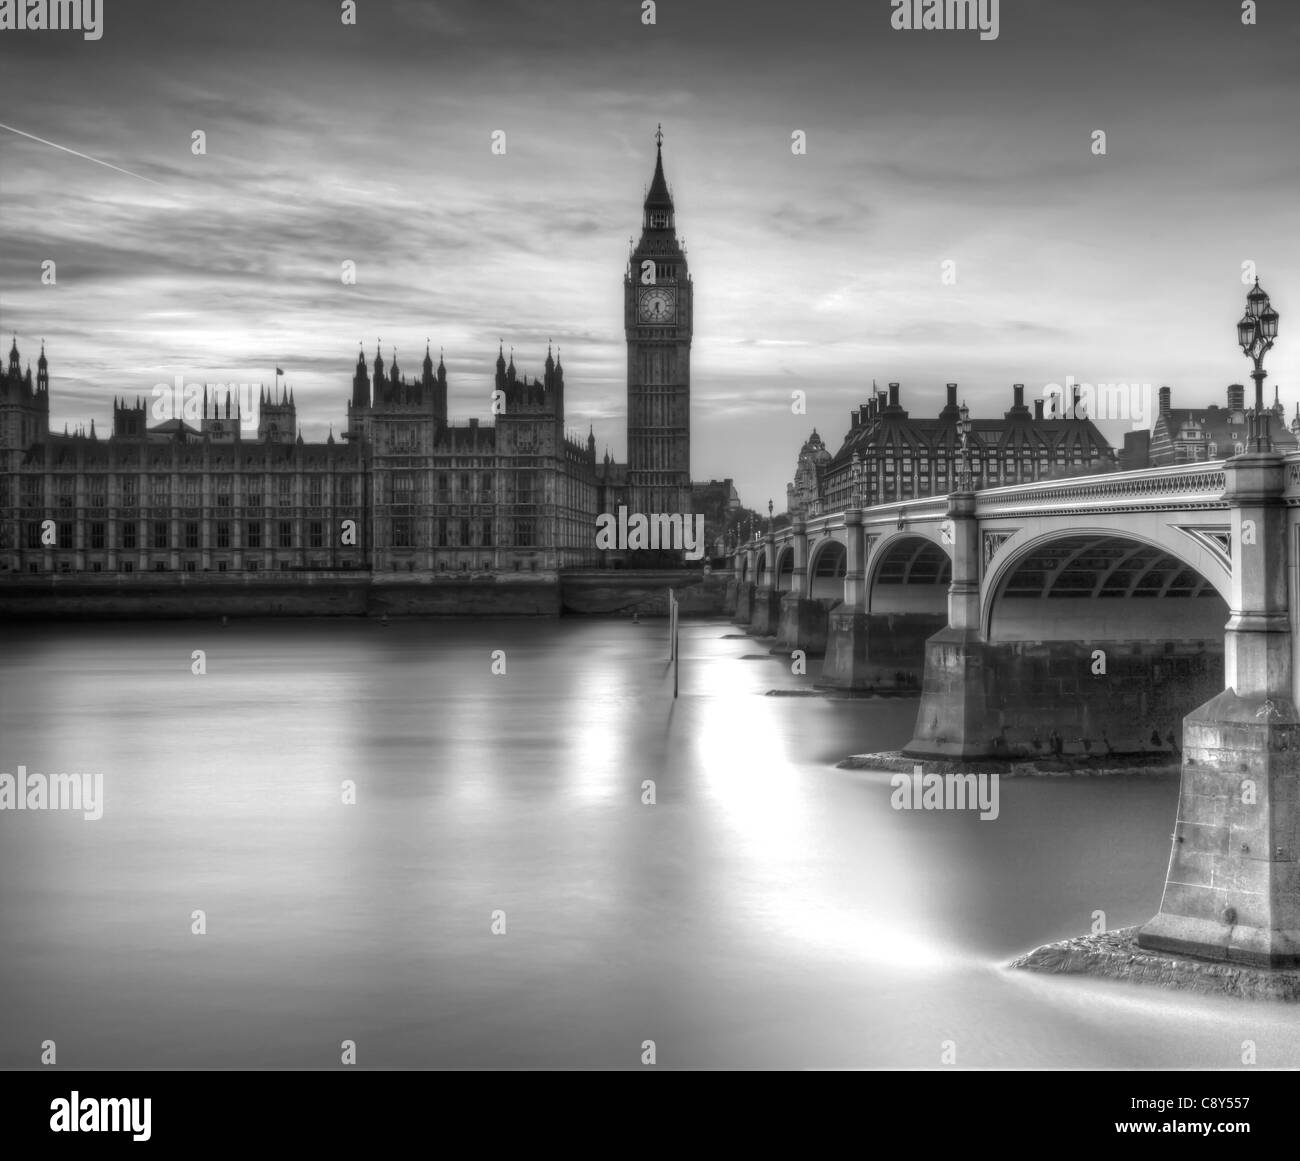 The Houses of Parliament (Palace of Westminster) London, England - Stock Image